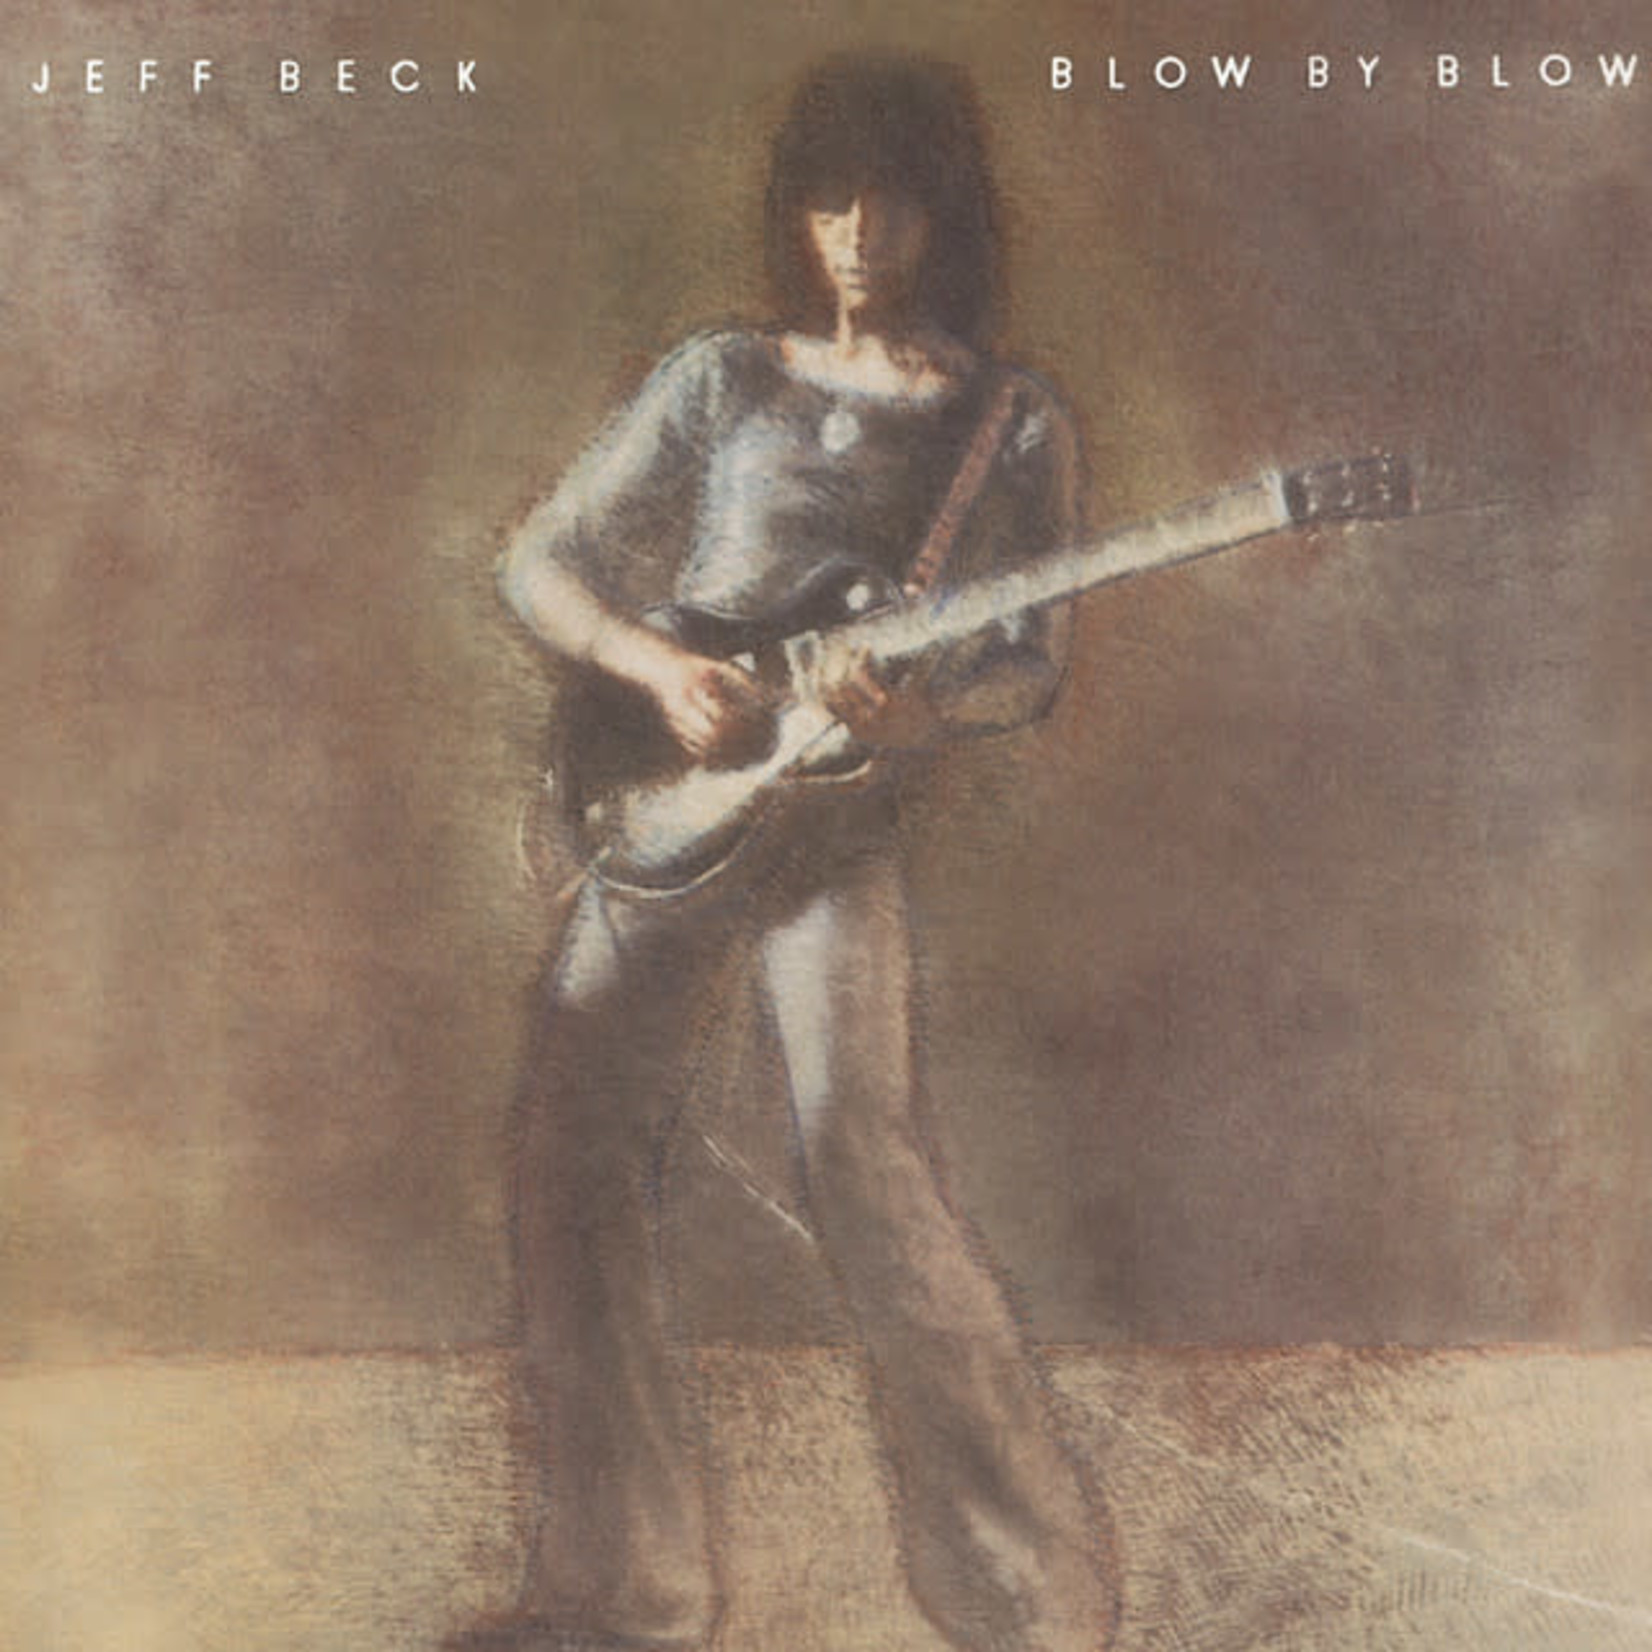 Compact Disc Jeff Beck - Blow By Blow  SACD